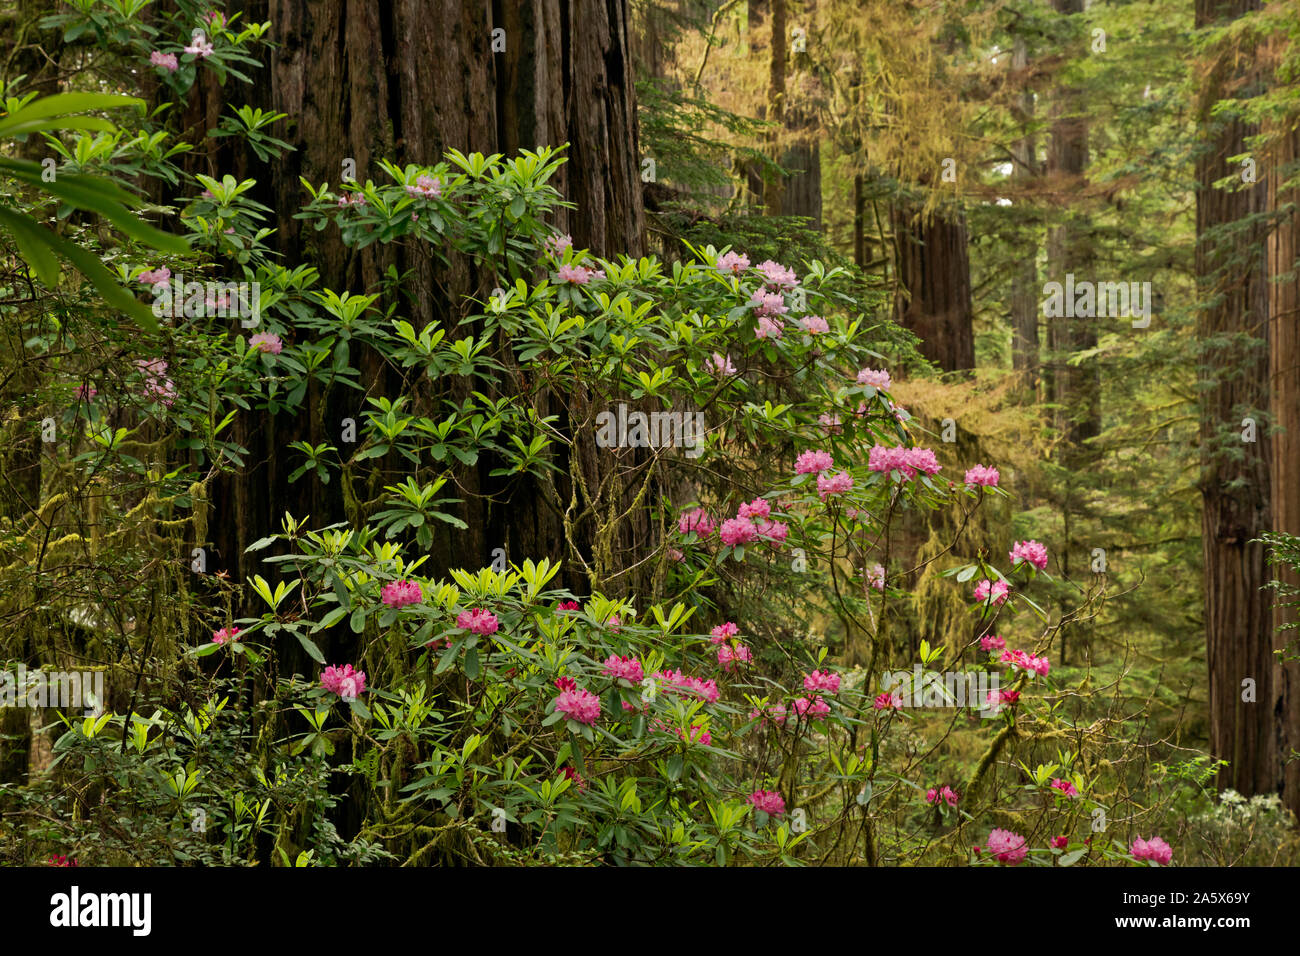 CA03760-00...CALIFORNIA - Rhododendron in bloom near a giant redwood tree located along the Boy Scout Tree Trail in Jedediah Smith Redwoods State Park Stock Photo